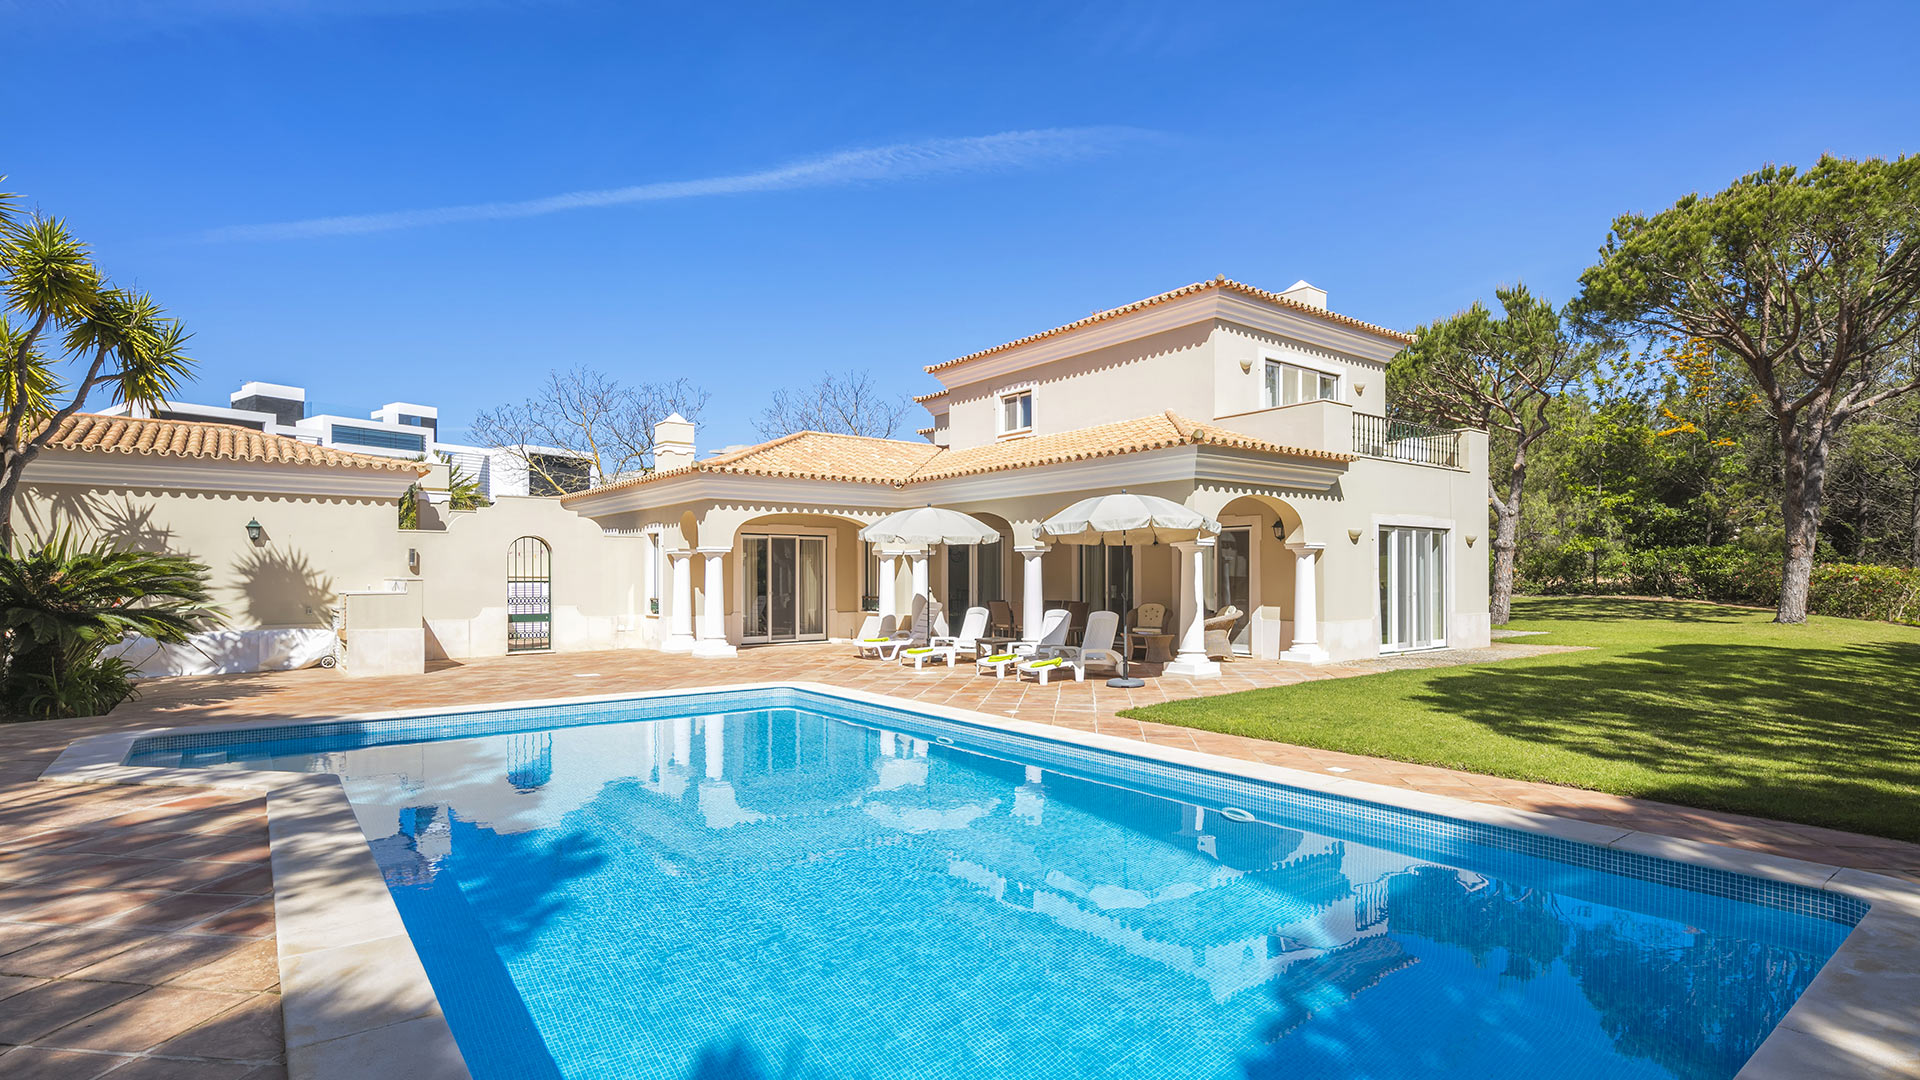 Villa Villa Peach, Rental in Algarve